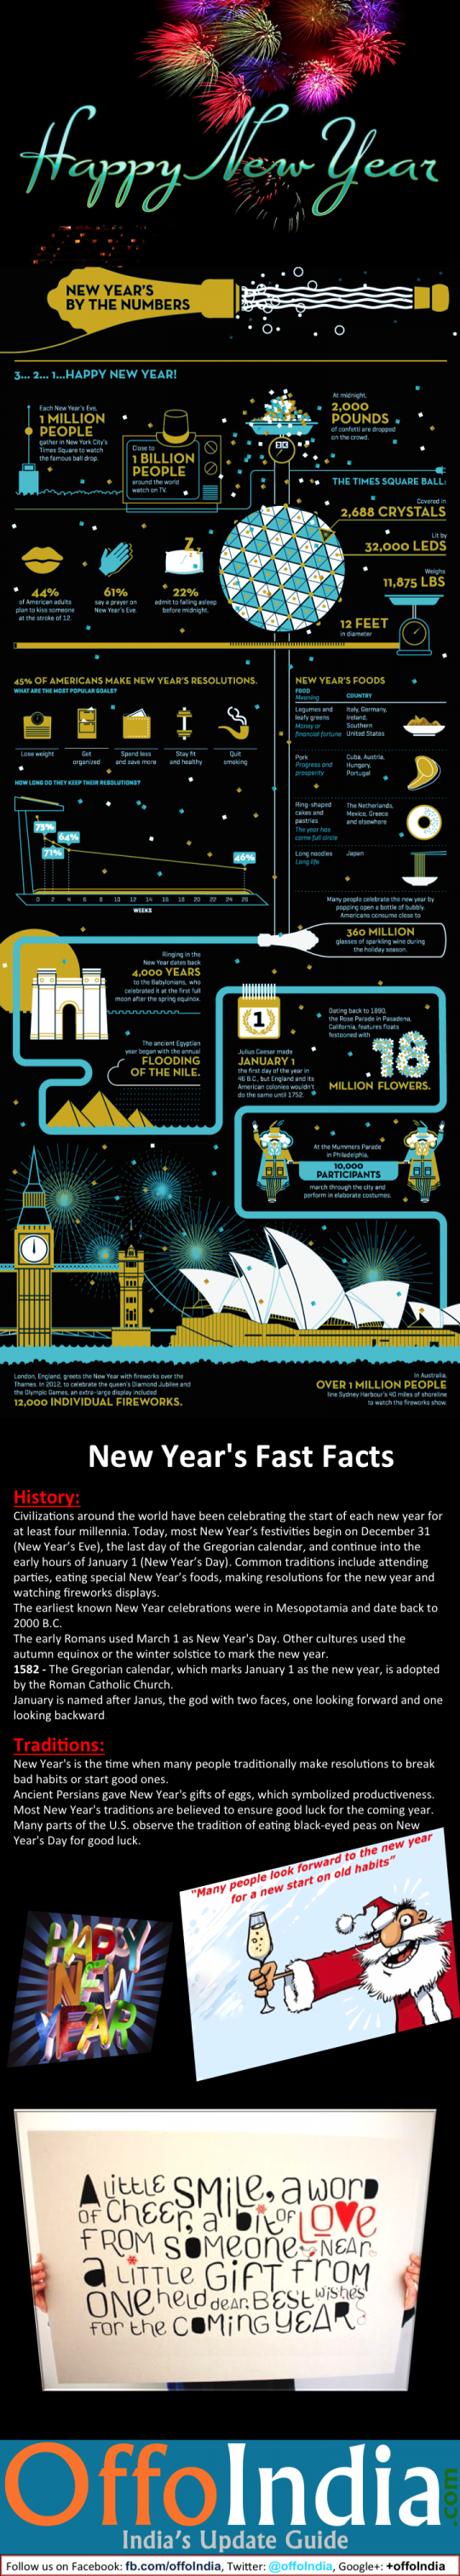 The Facts and stats on New Year